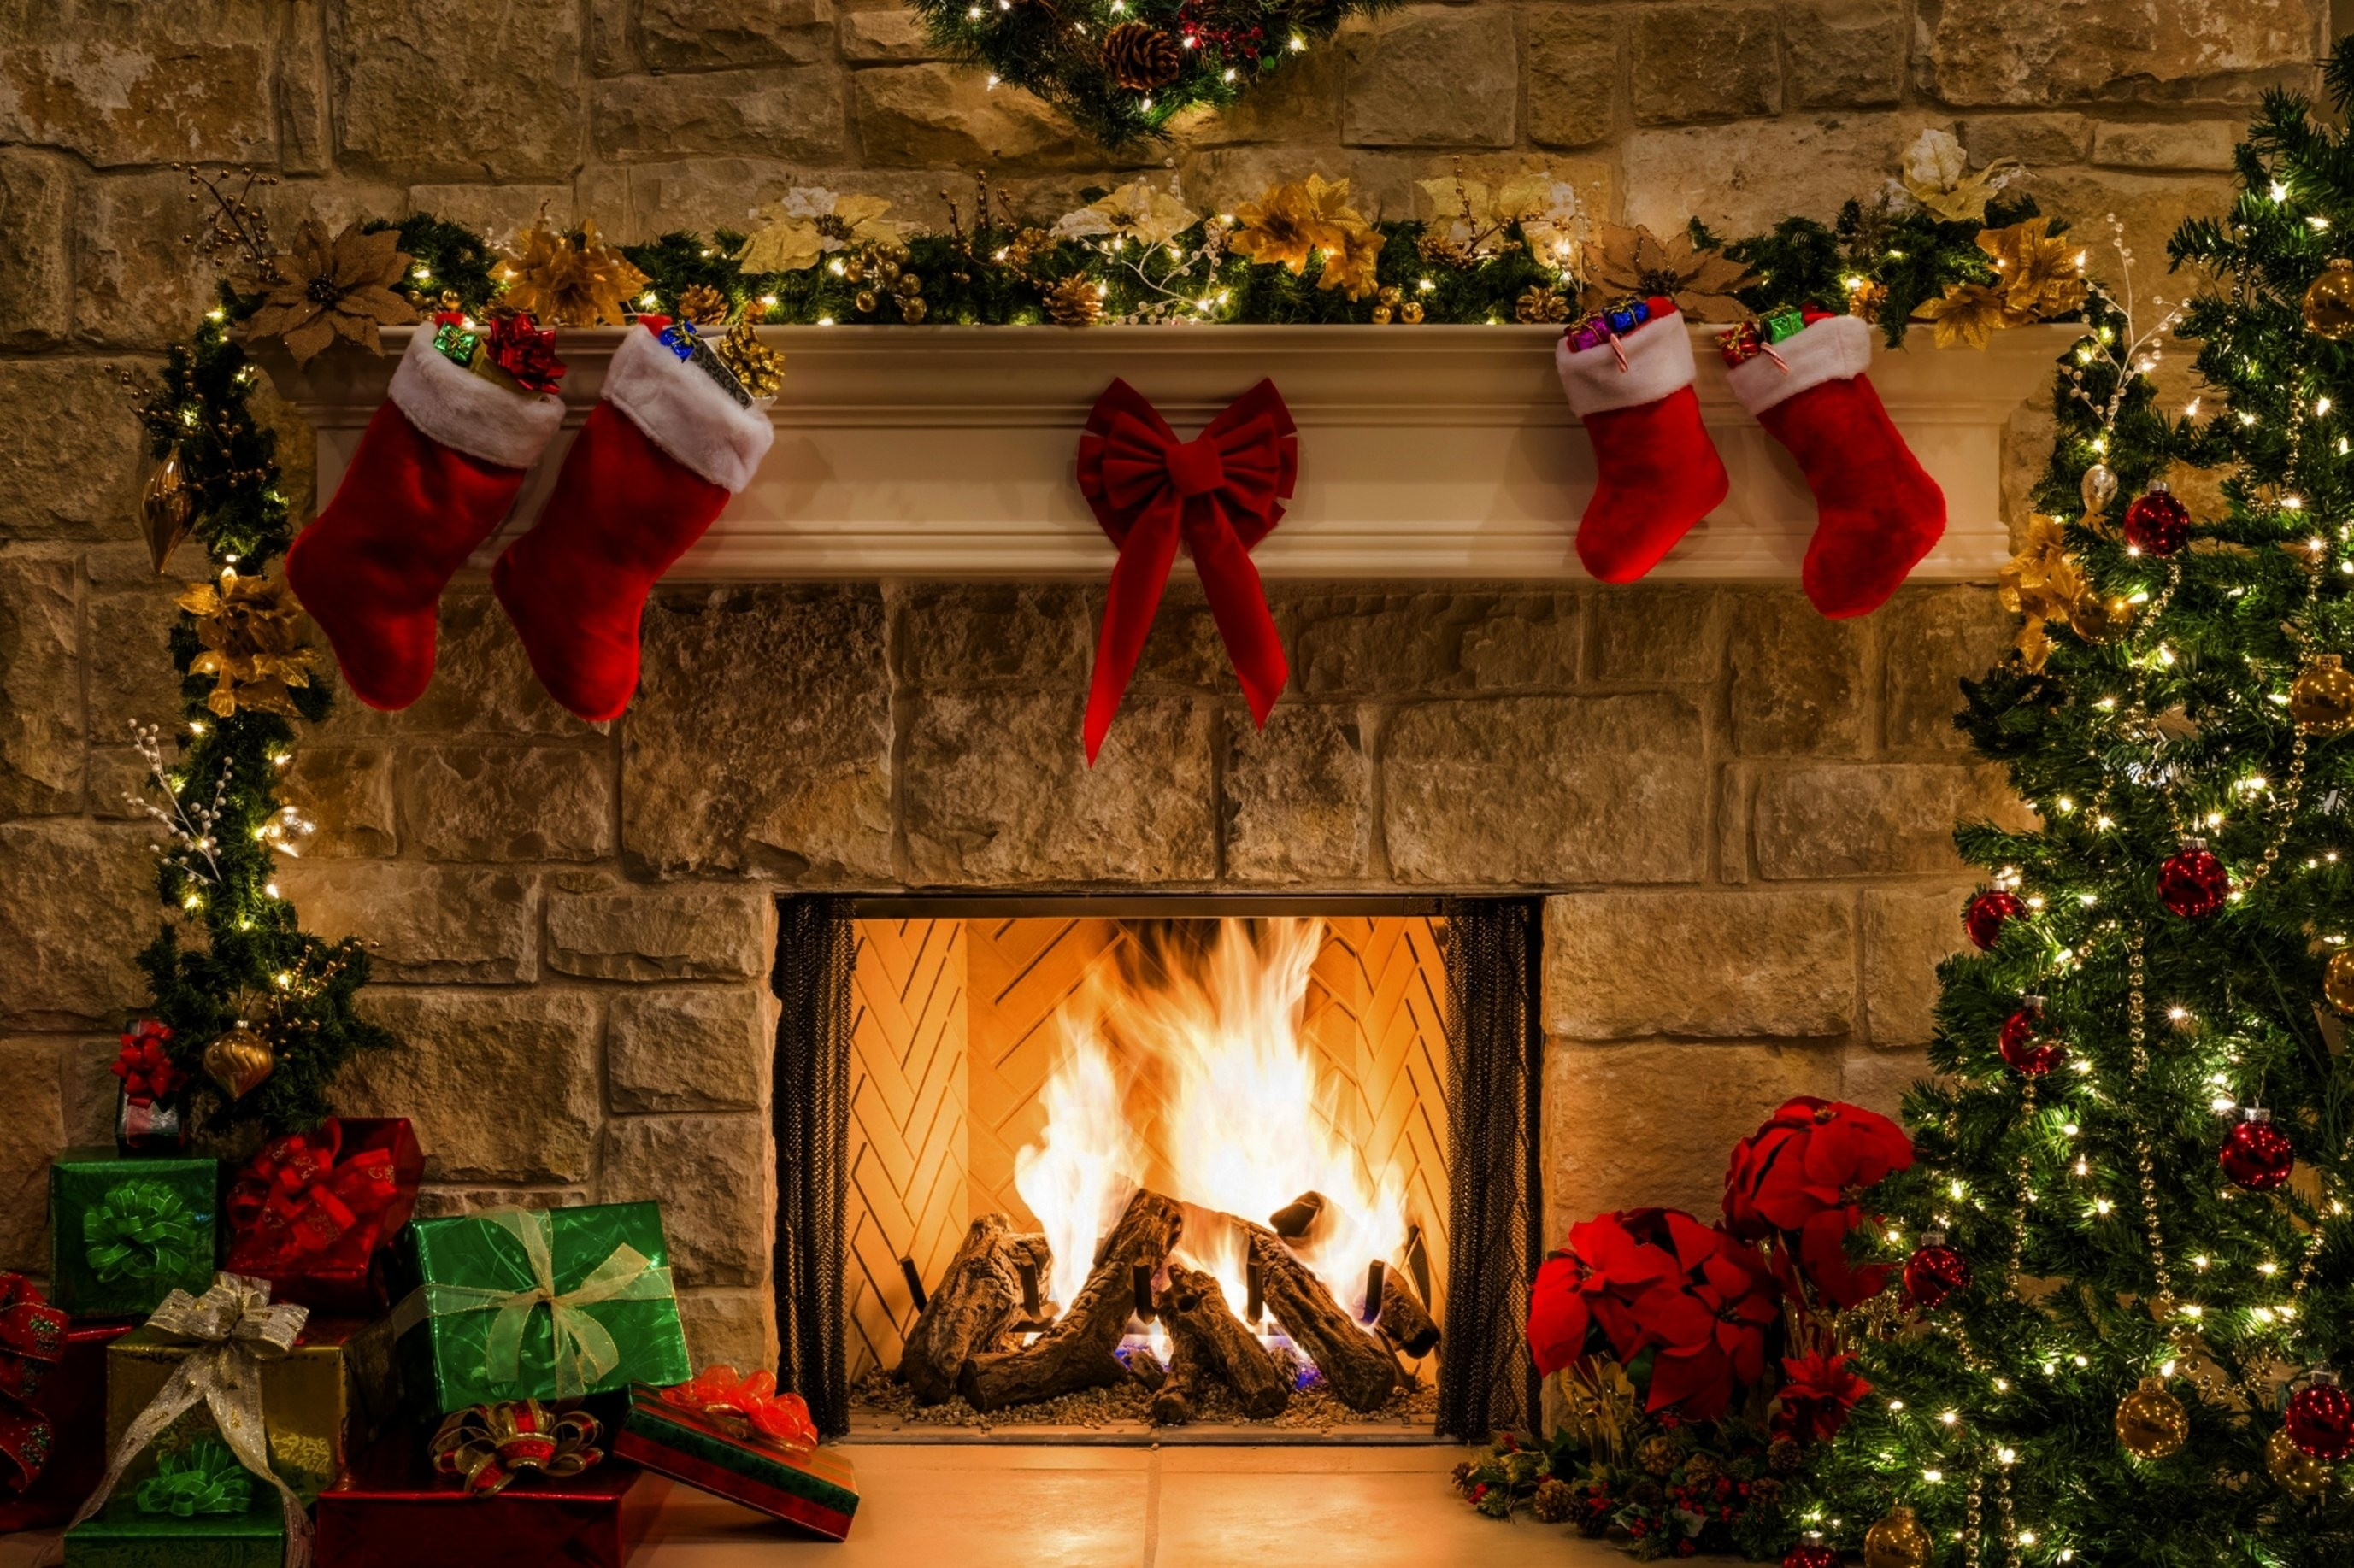 Res: 2754x1835, Title : information ( christmas fireplace wallpapers images #3. Dimension :  2754 x 1835. File Type : JPG/JPEG